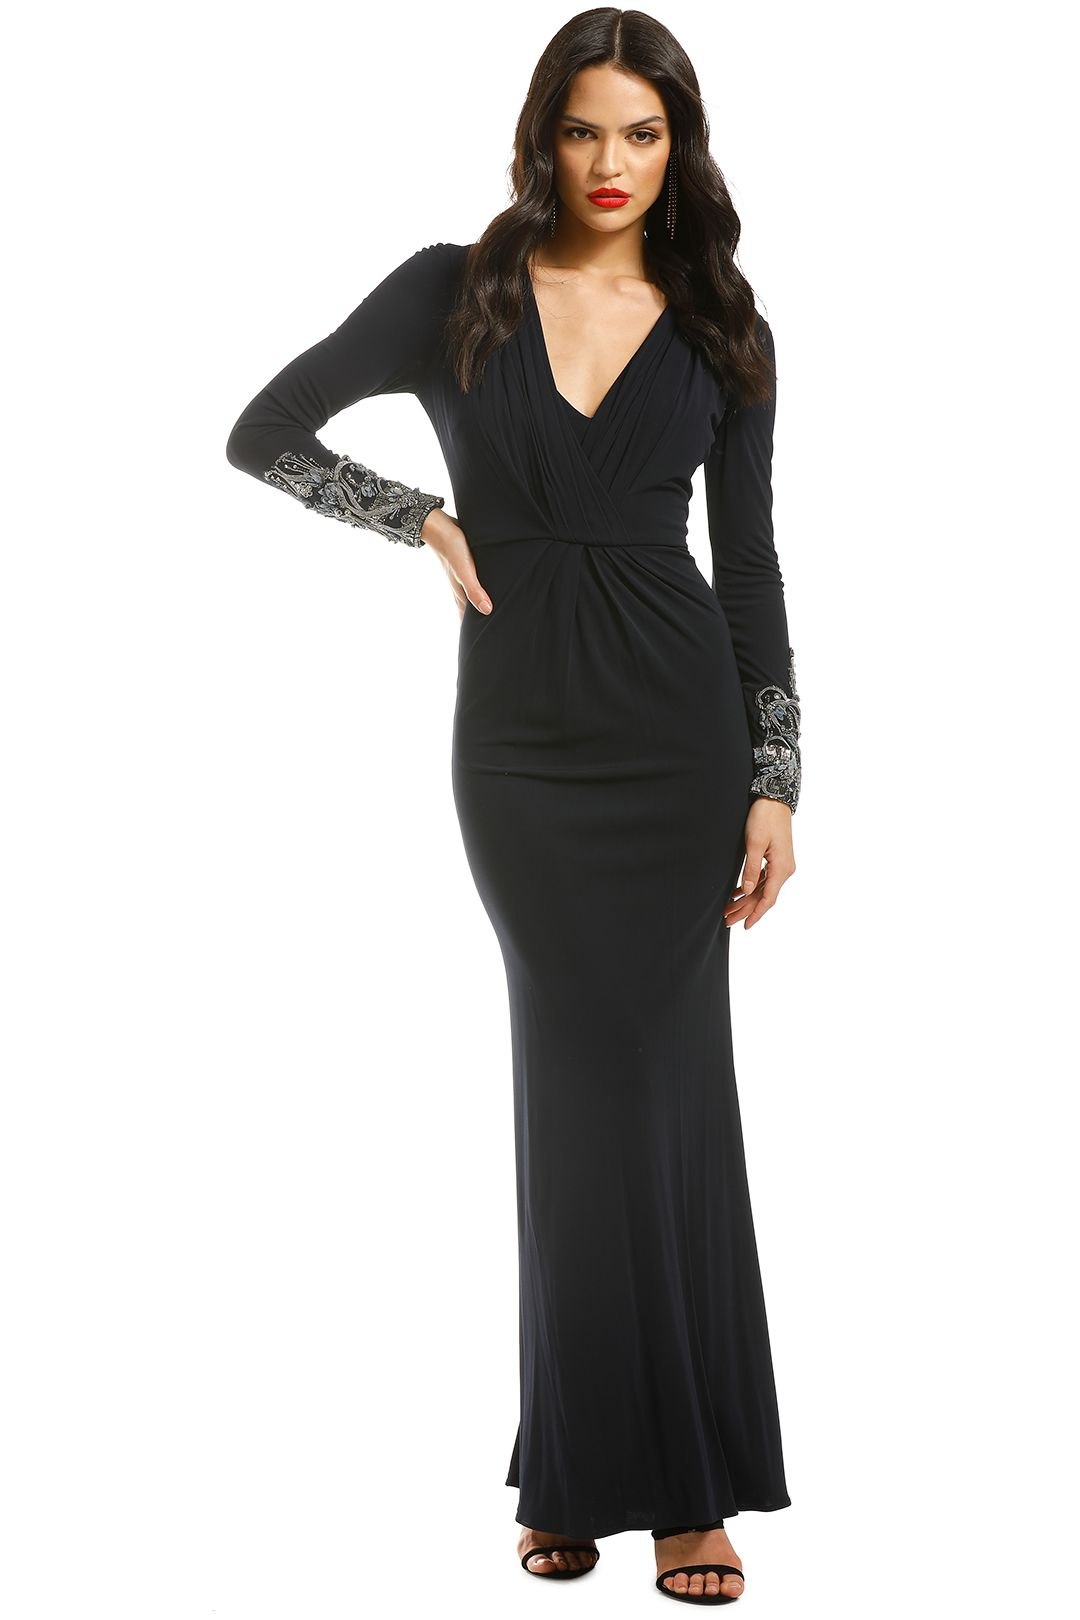 Badgley-Mischka-Navy-Sequin-Long-Sleeve-Embellished-Navy-Front